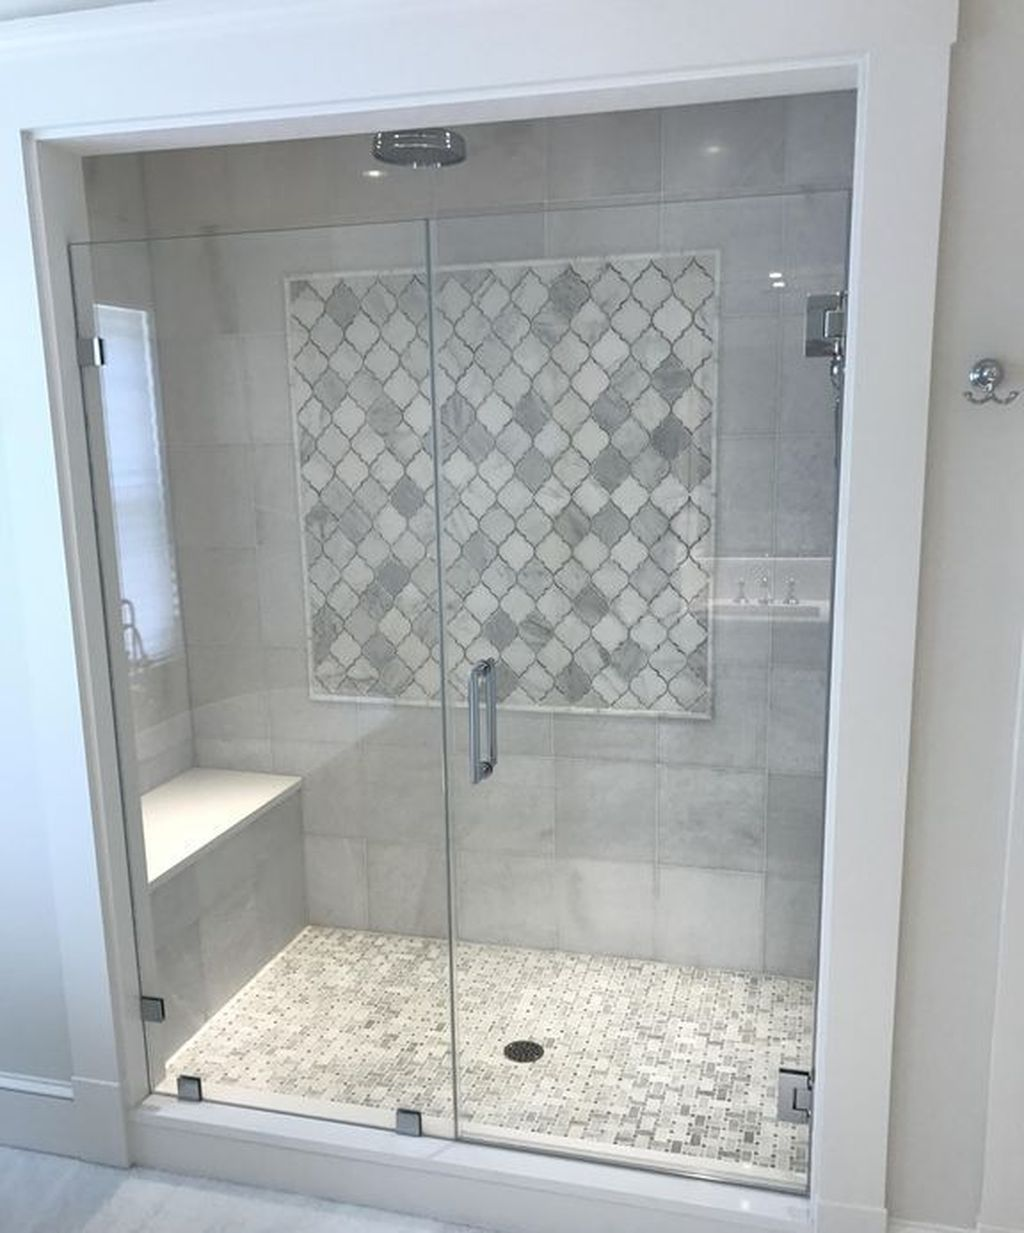 41 Ideas Of Shower Room Remodels For Small Areas You Ll Wish To